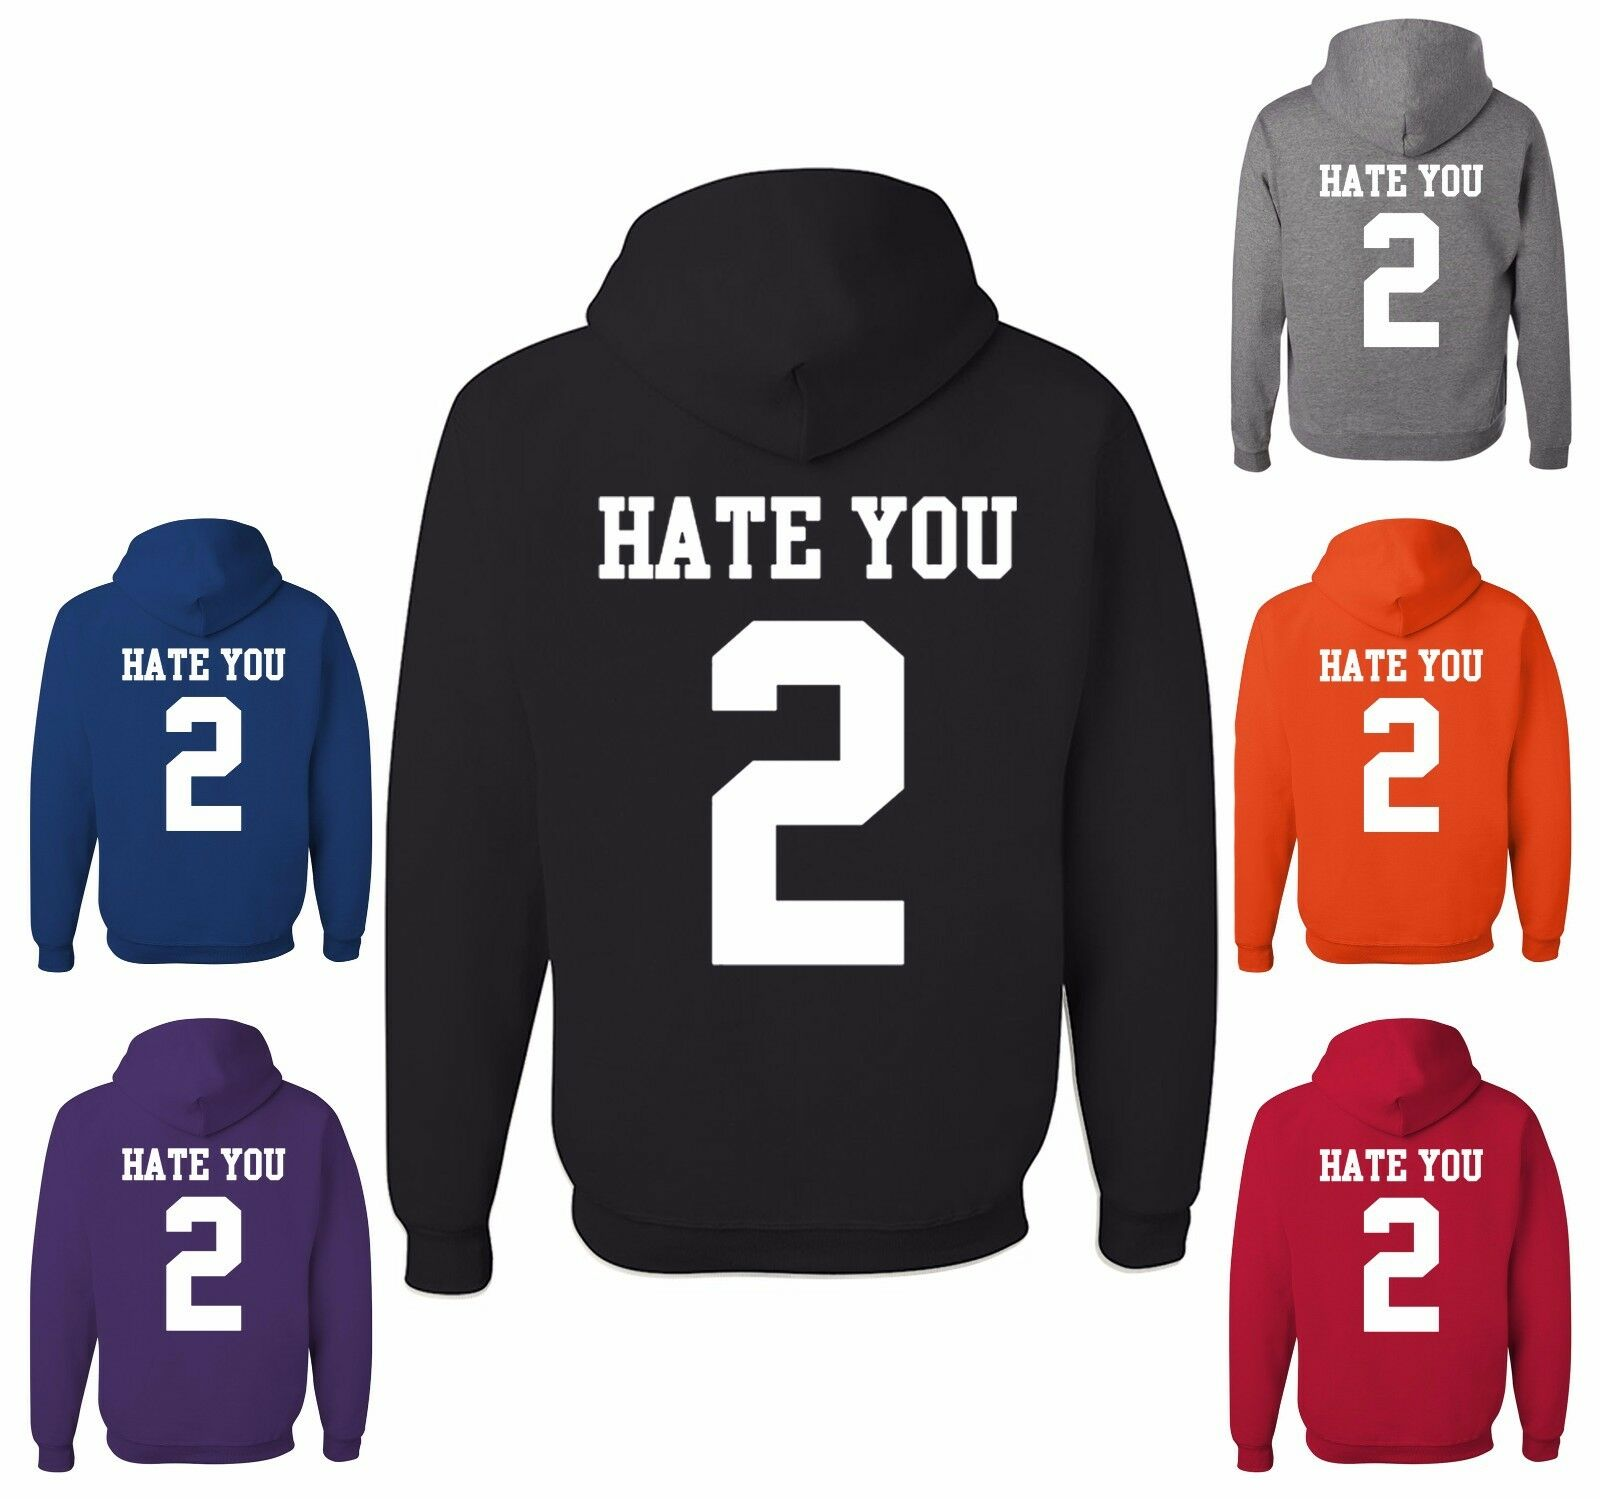 Hate U 2 Funny Hoodie Offensive Adult Humor College Party Drinking Sweatshirt